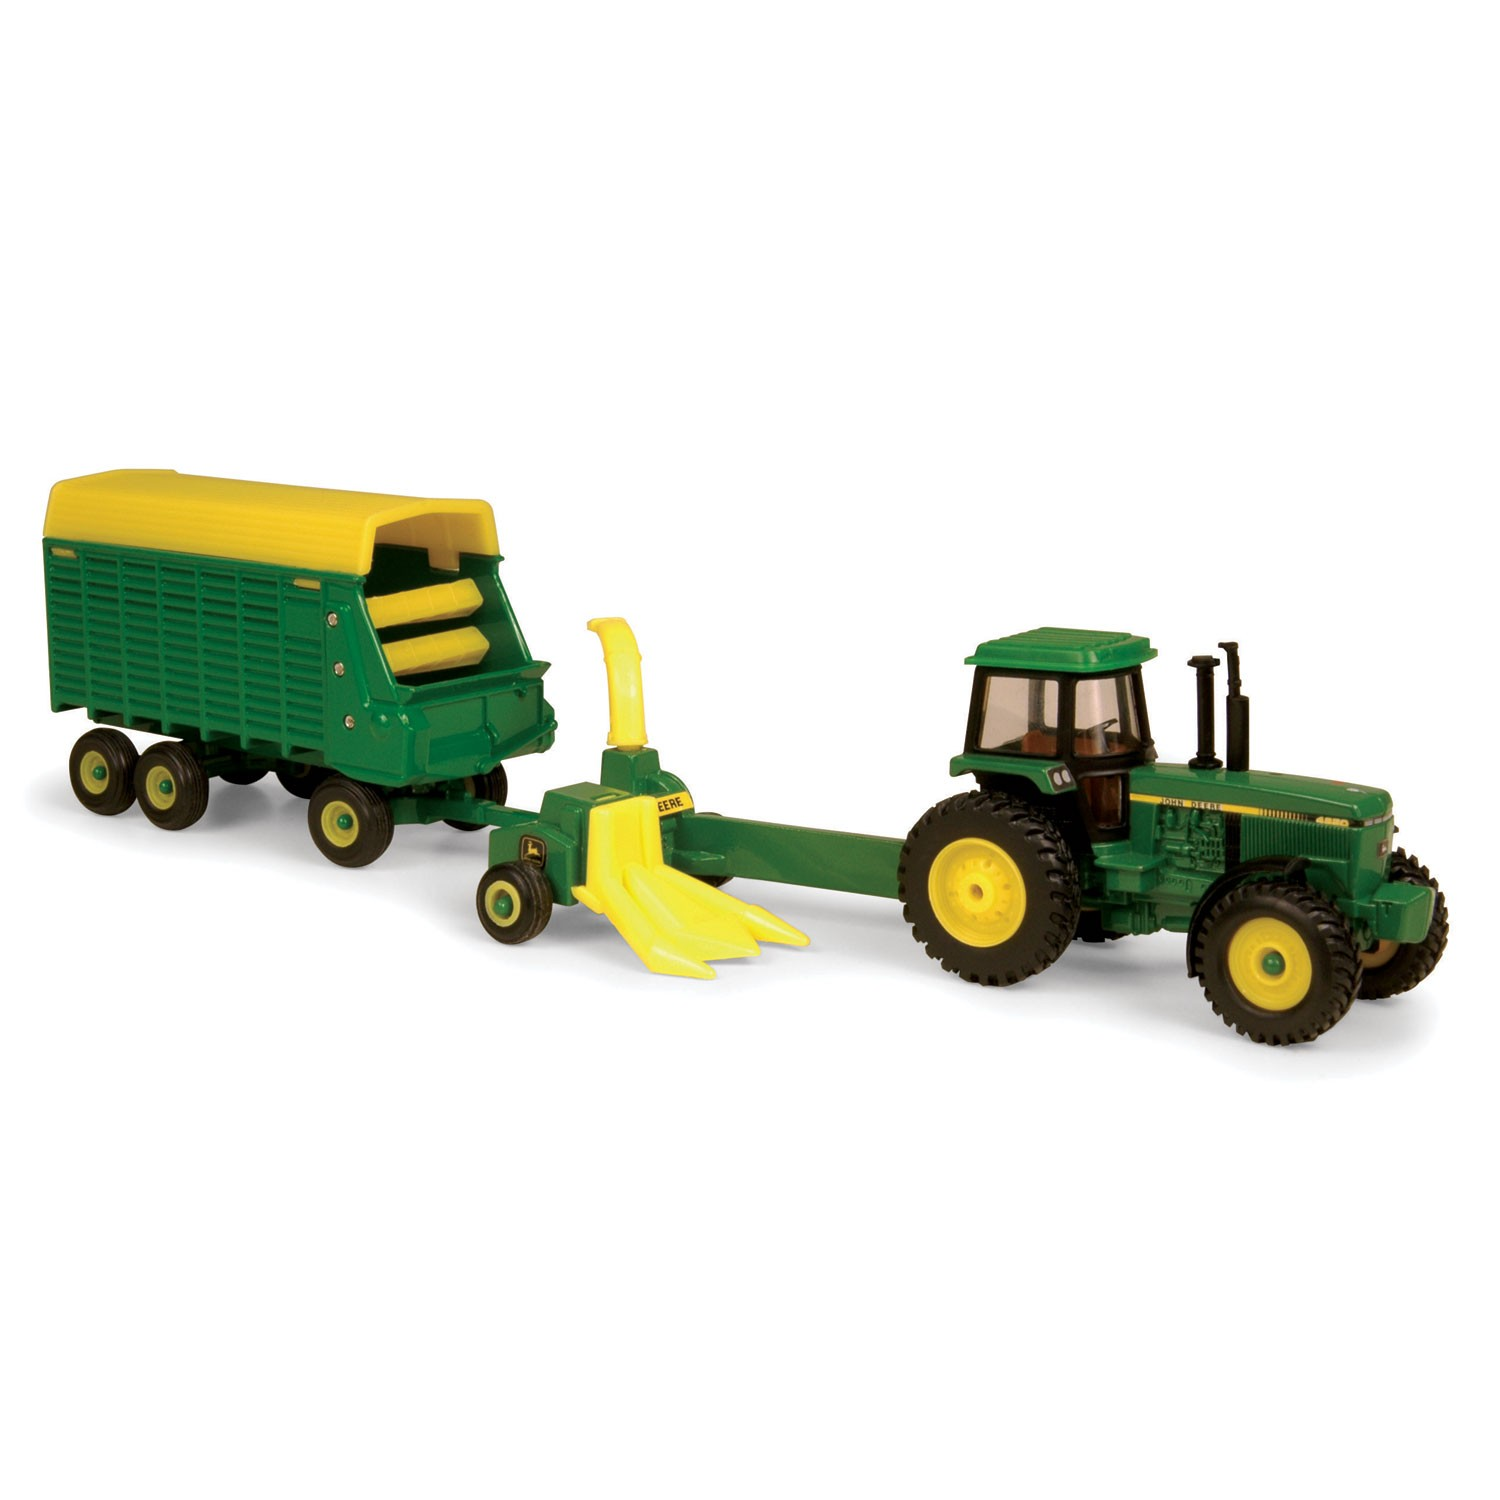 ... so your cattle can be fed with this John Deere forage harvest set